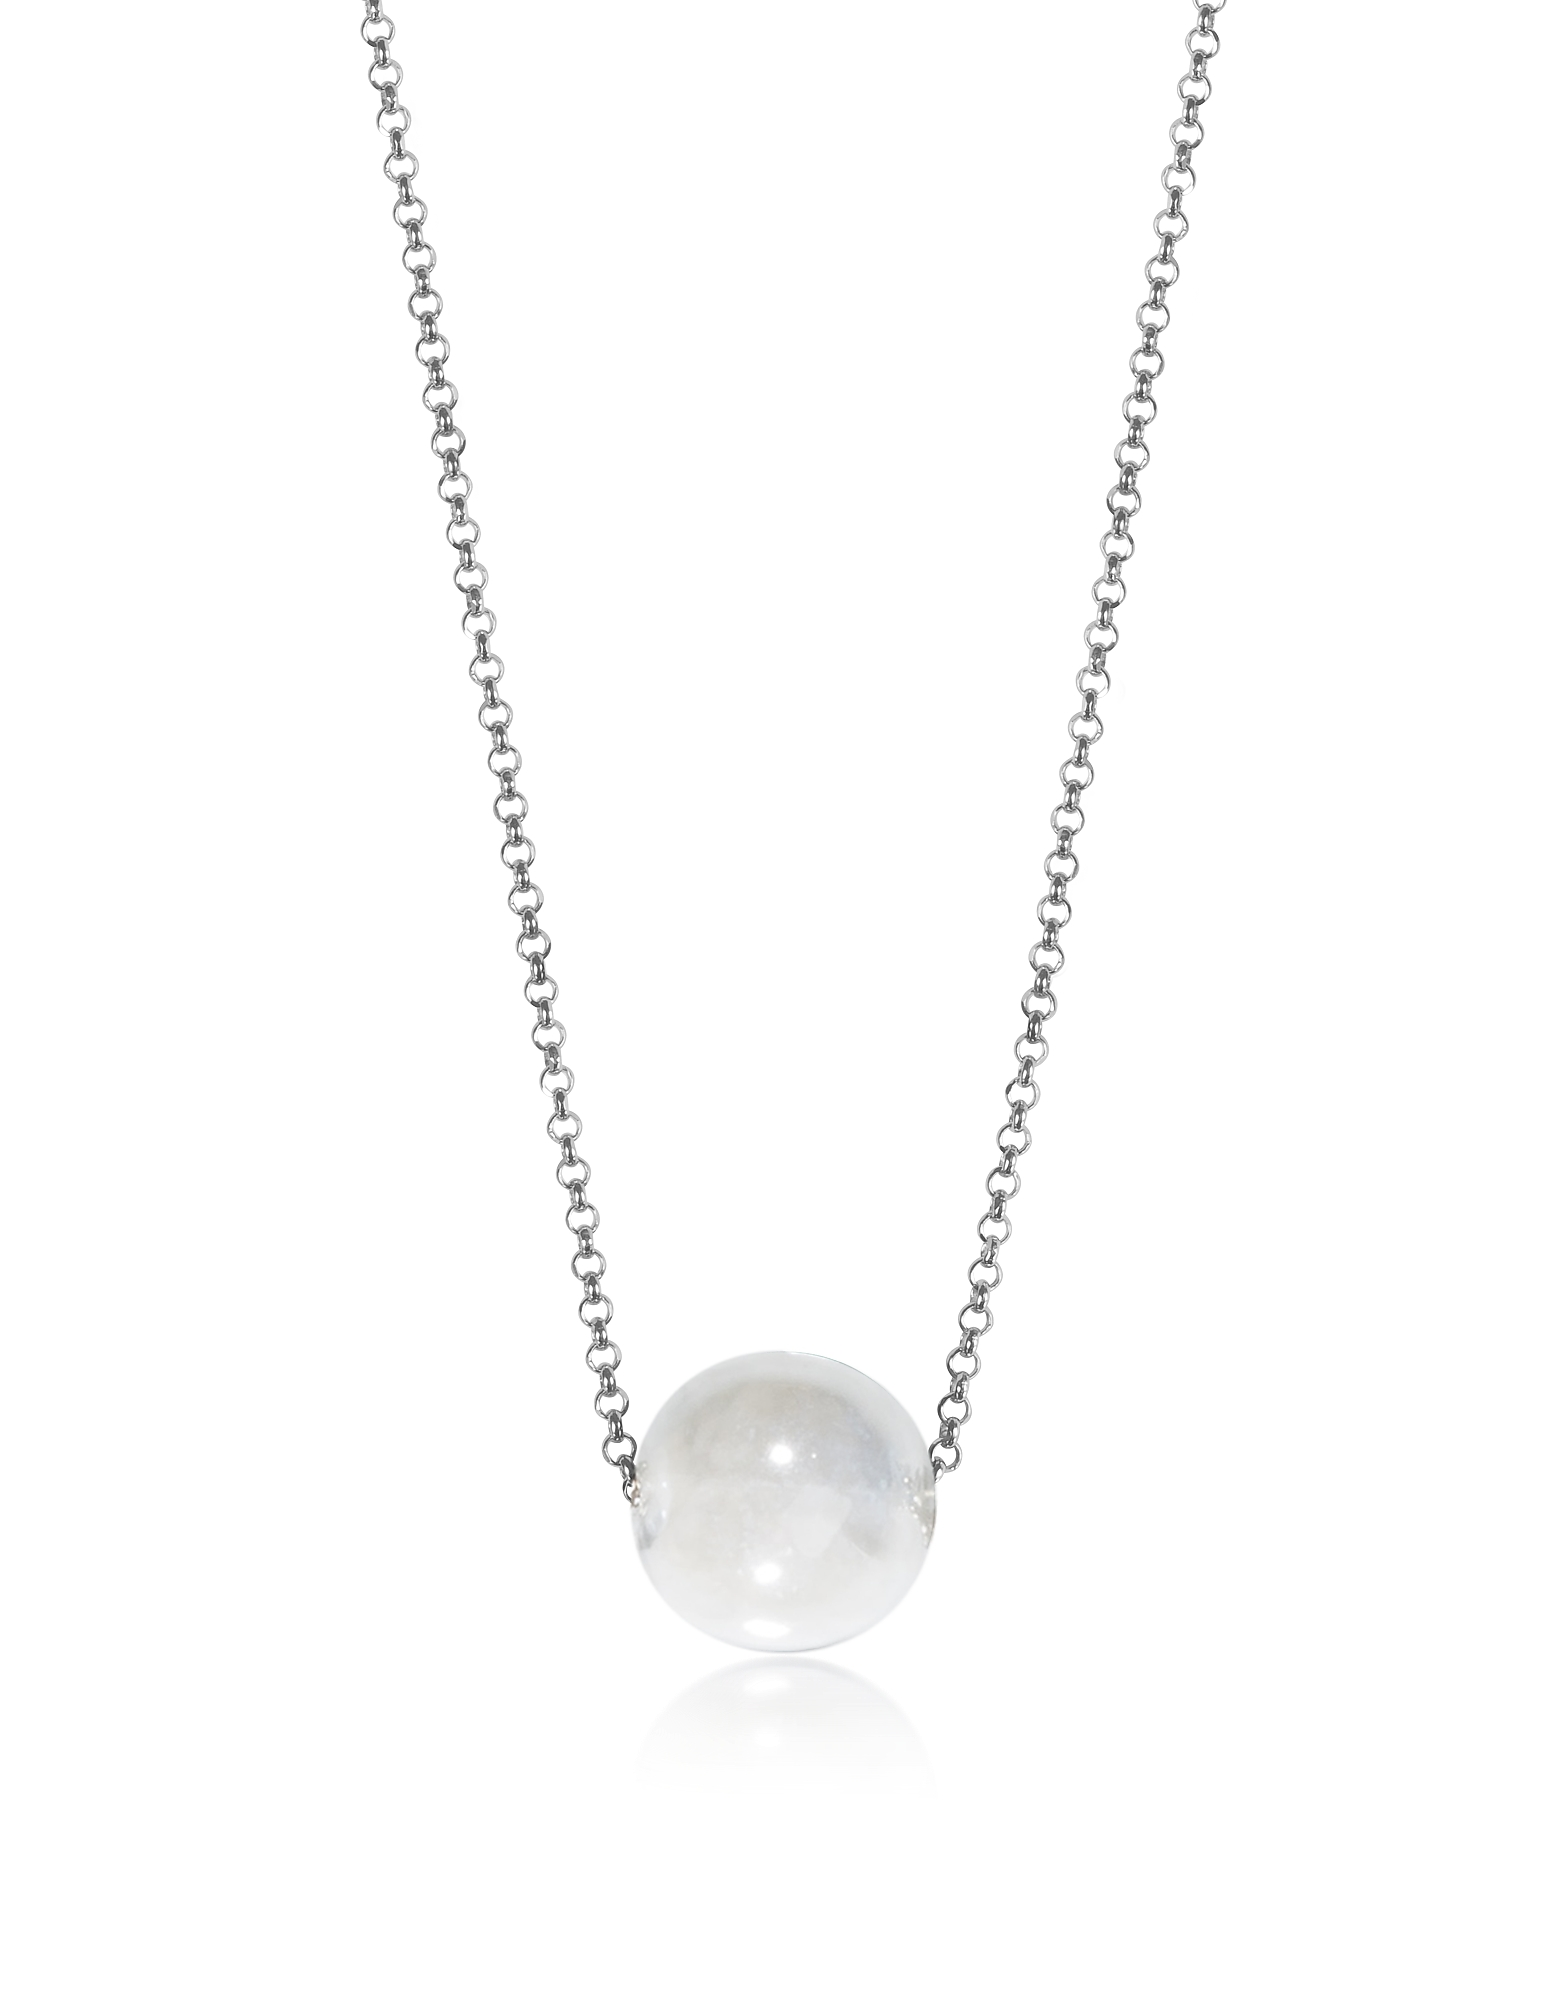 Perleadi White Murano Glass Bead Chain Necklace